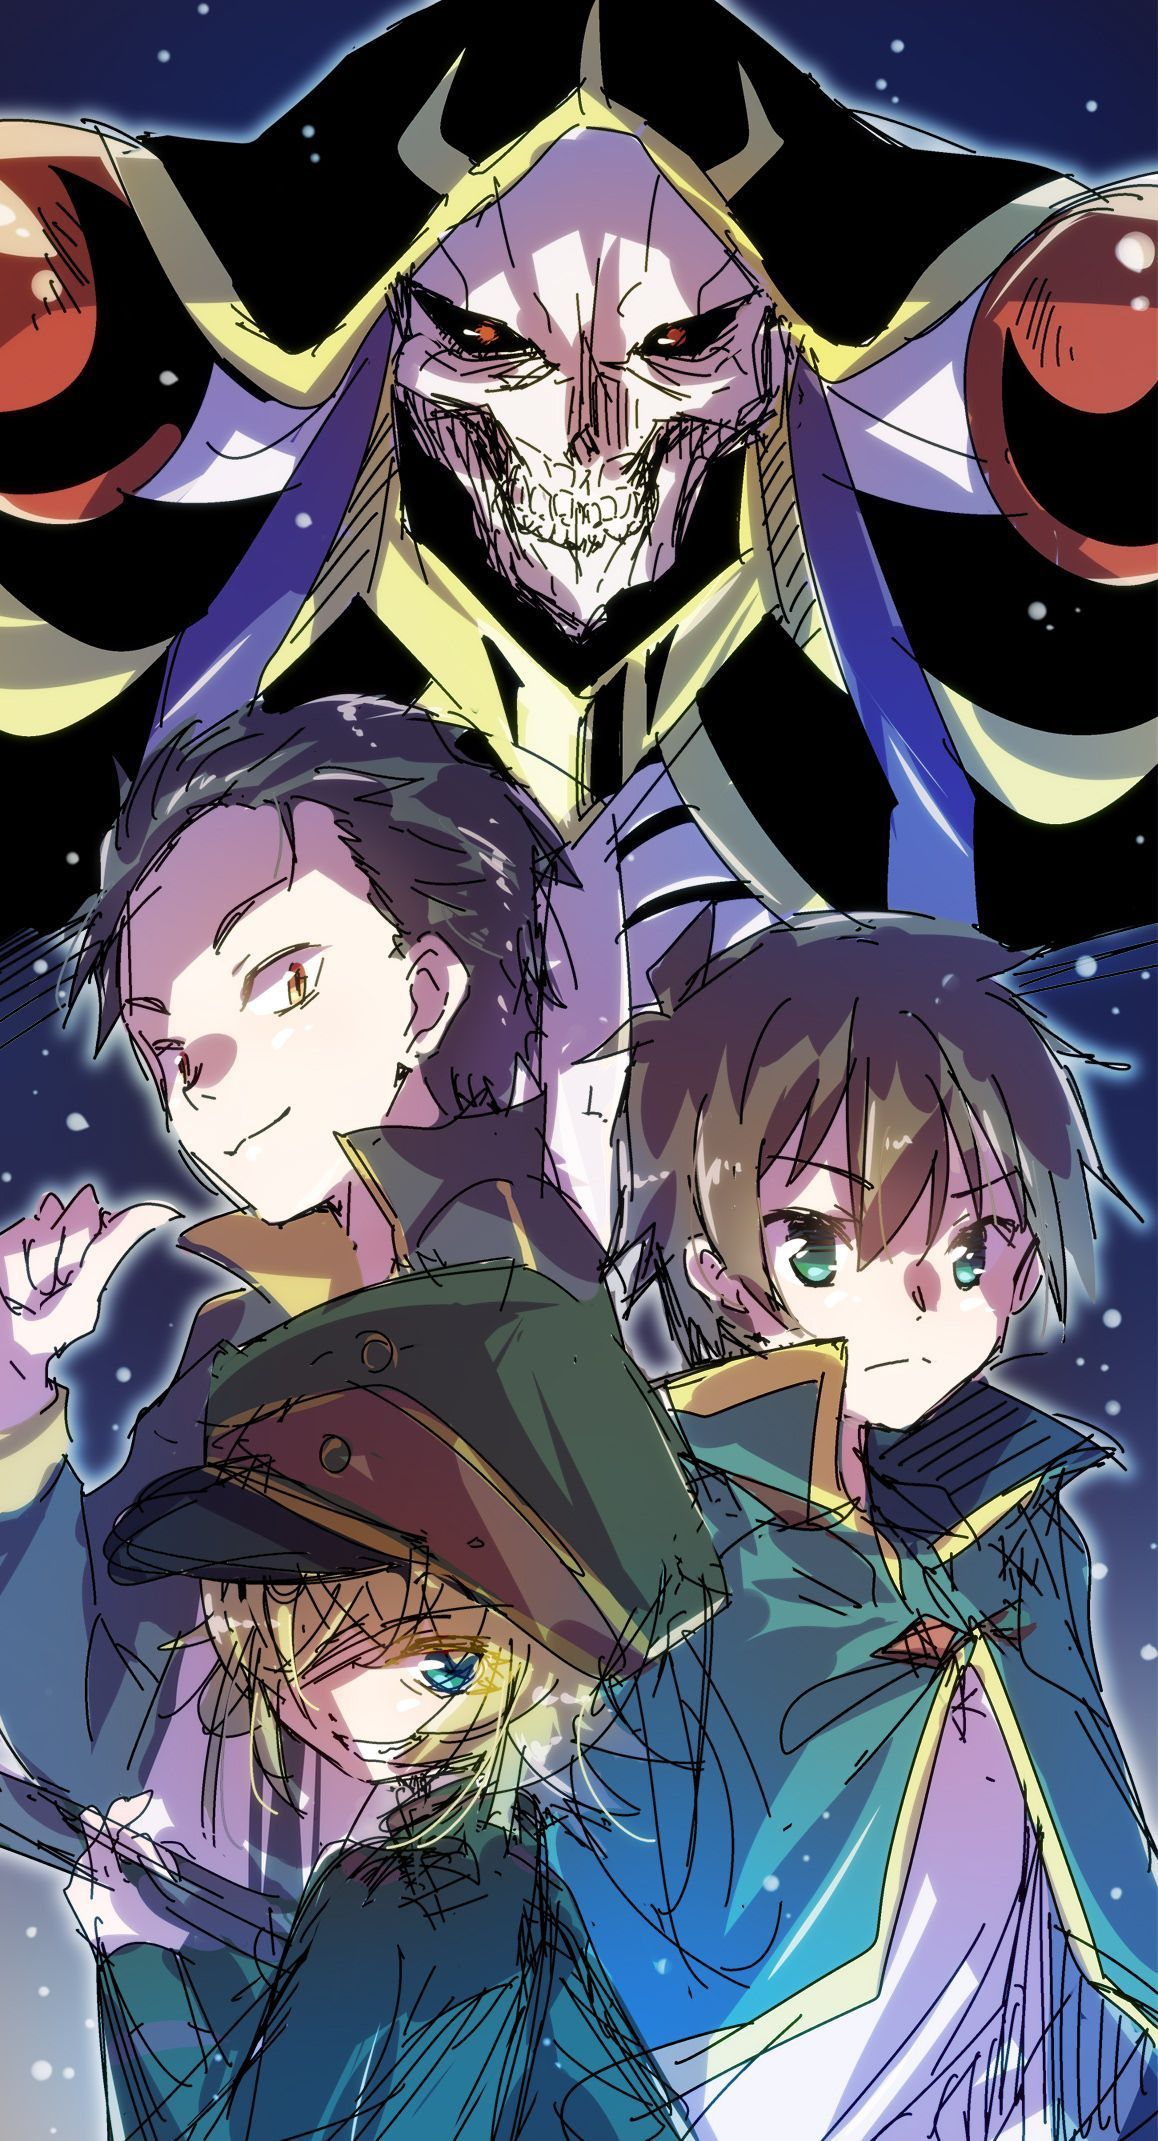 Isekai Quartet Anime in 2020 Anime crossover, Anime